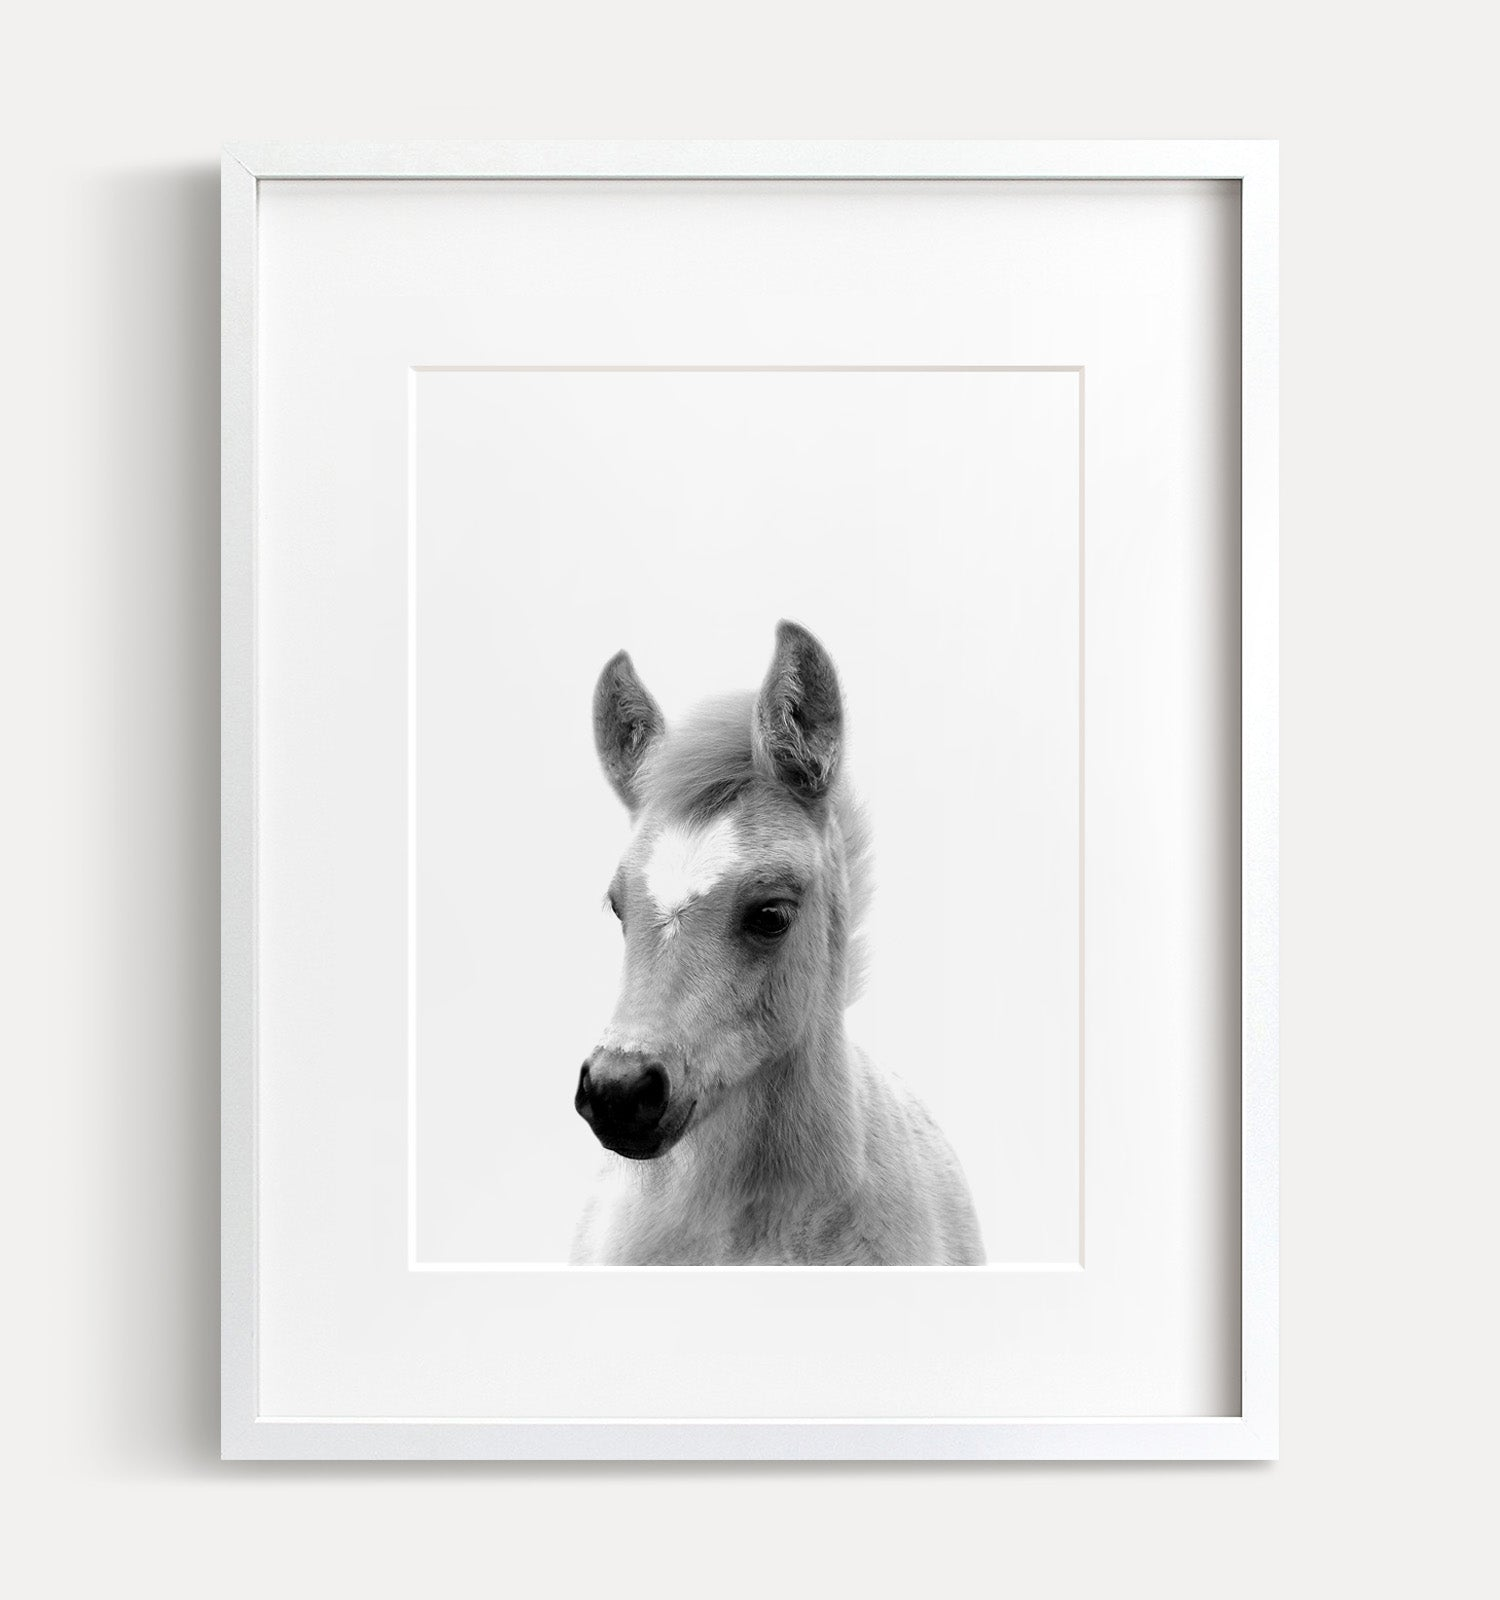 Baby Horse Printable Art - Black and White